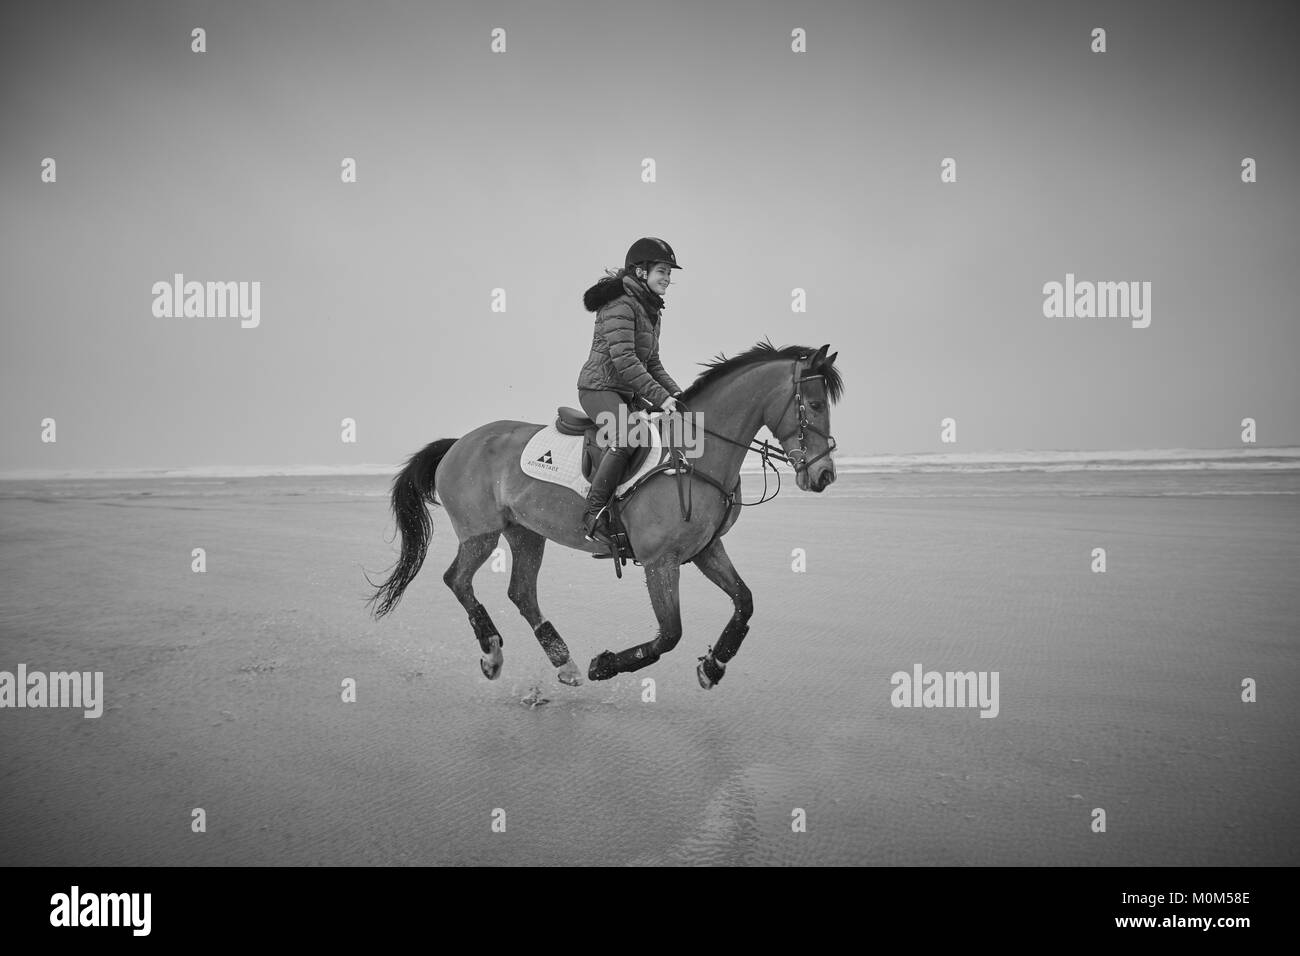 A female horse rider riding from left to right over low tide on a beach, captured with all four legs off the ground. - Stock Image